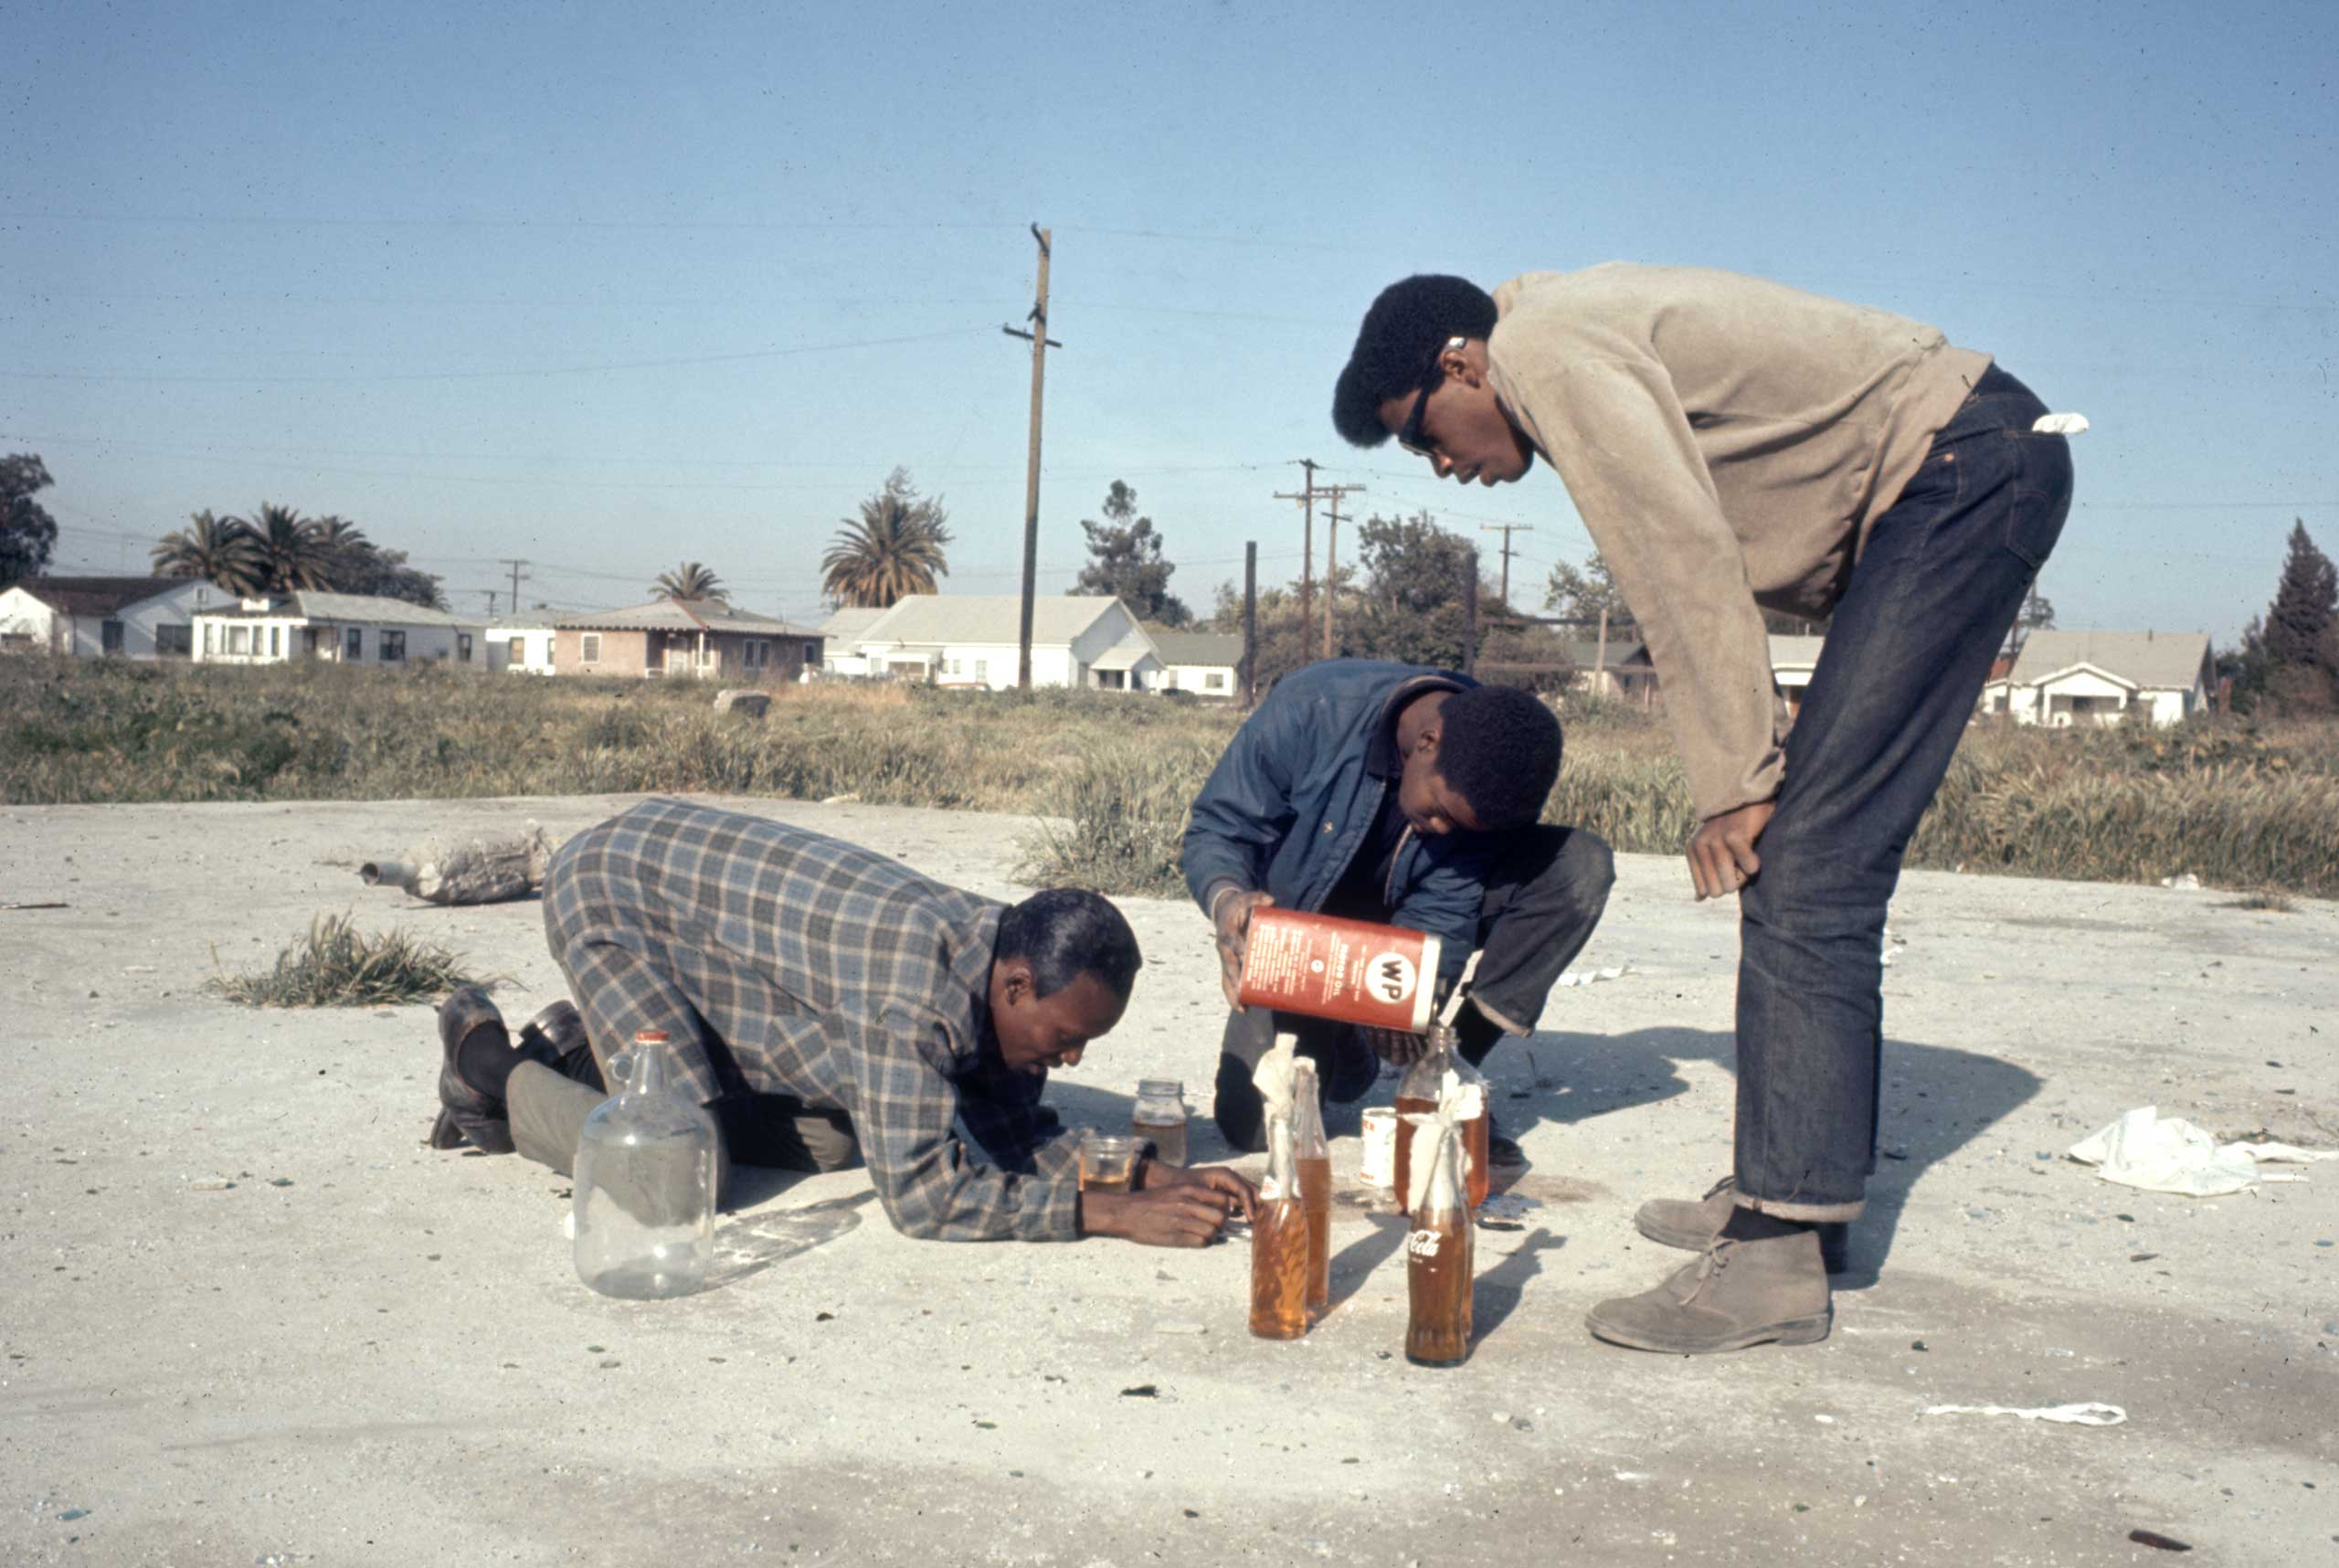 <b>Not published in LIFE.</b> Molotov cocktails in Watts, 1966.